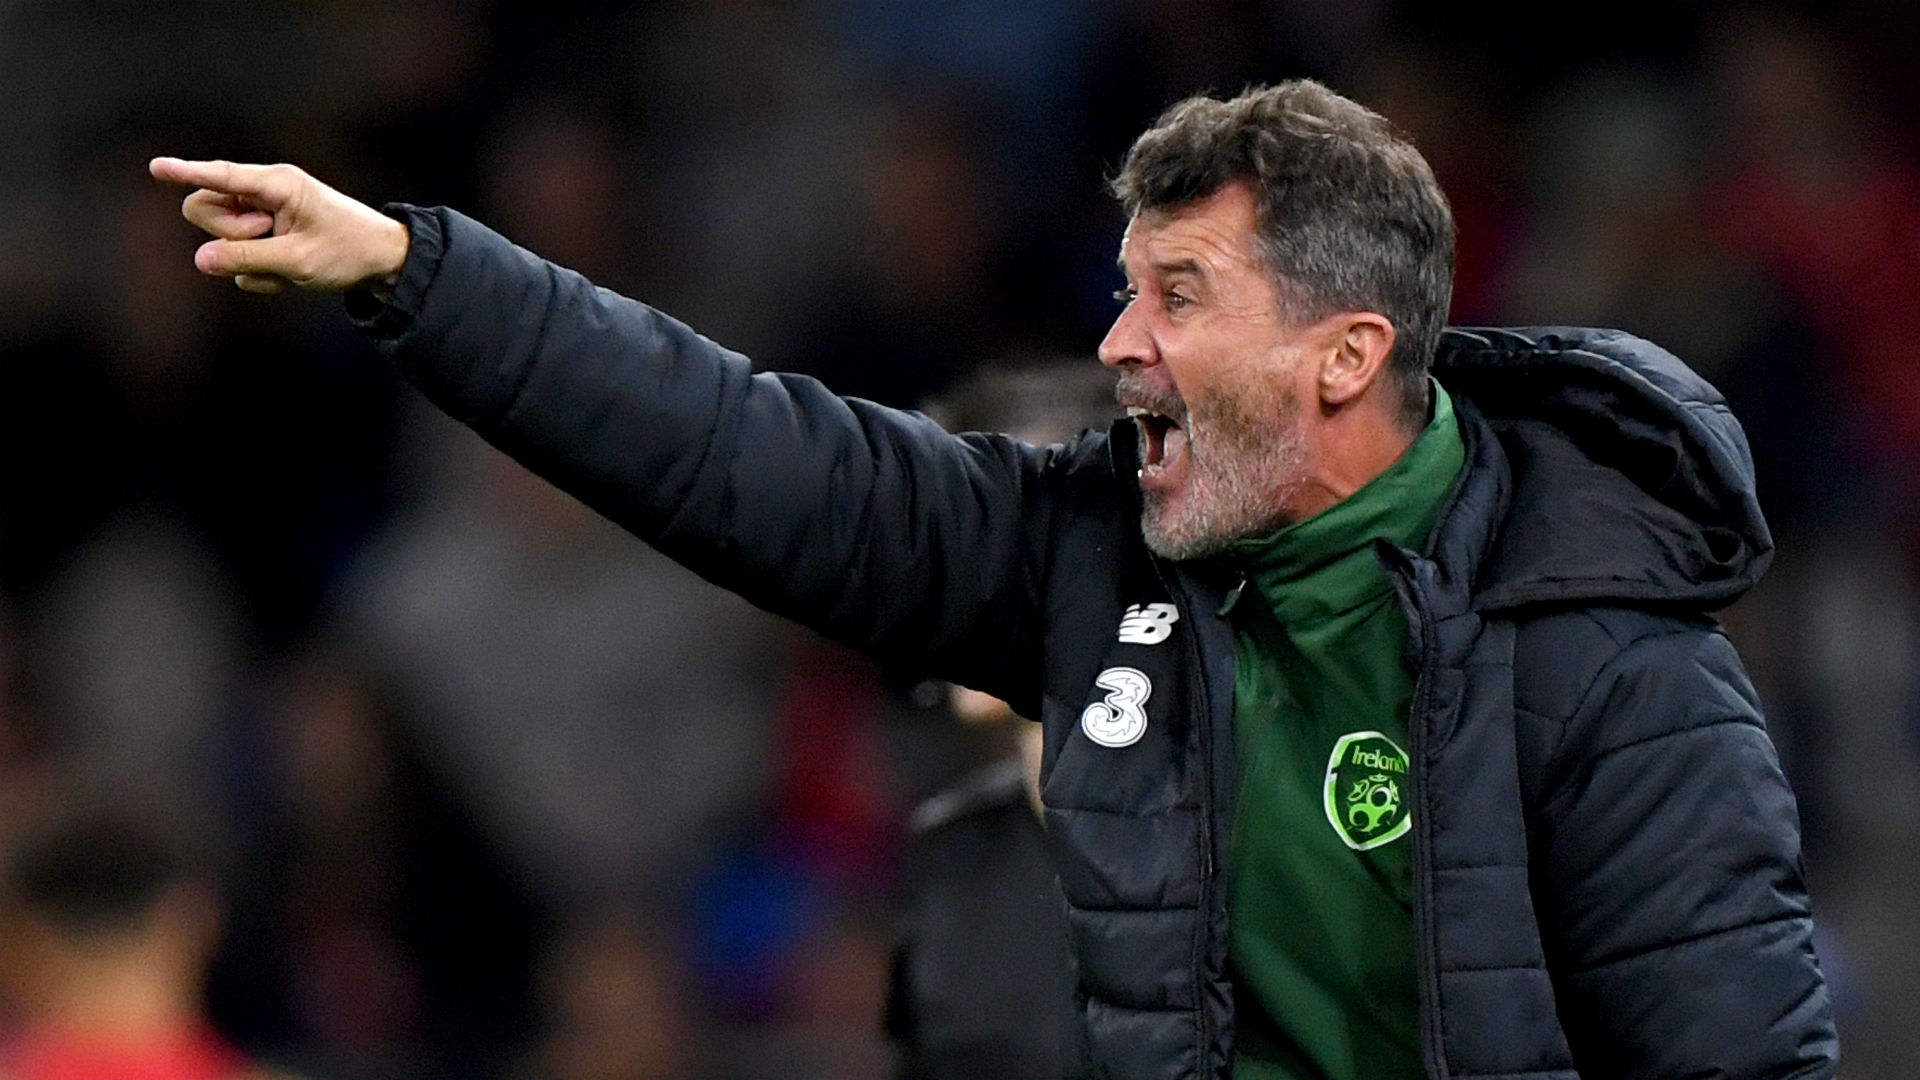 'They need to go back and see how bad they were'- Keane slams former Republic of Ireland players